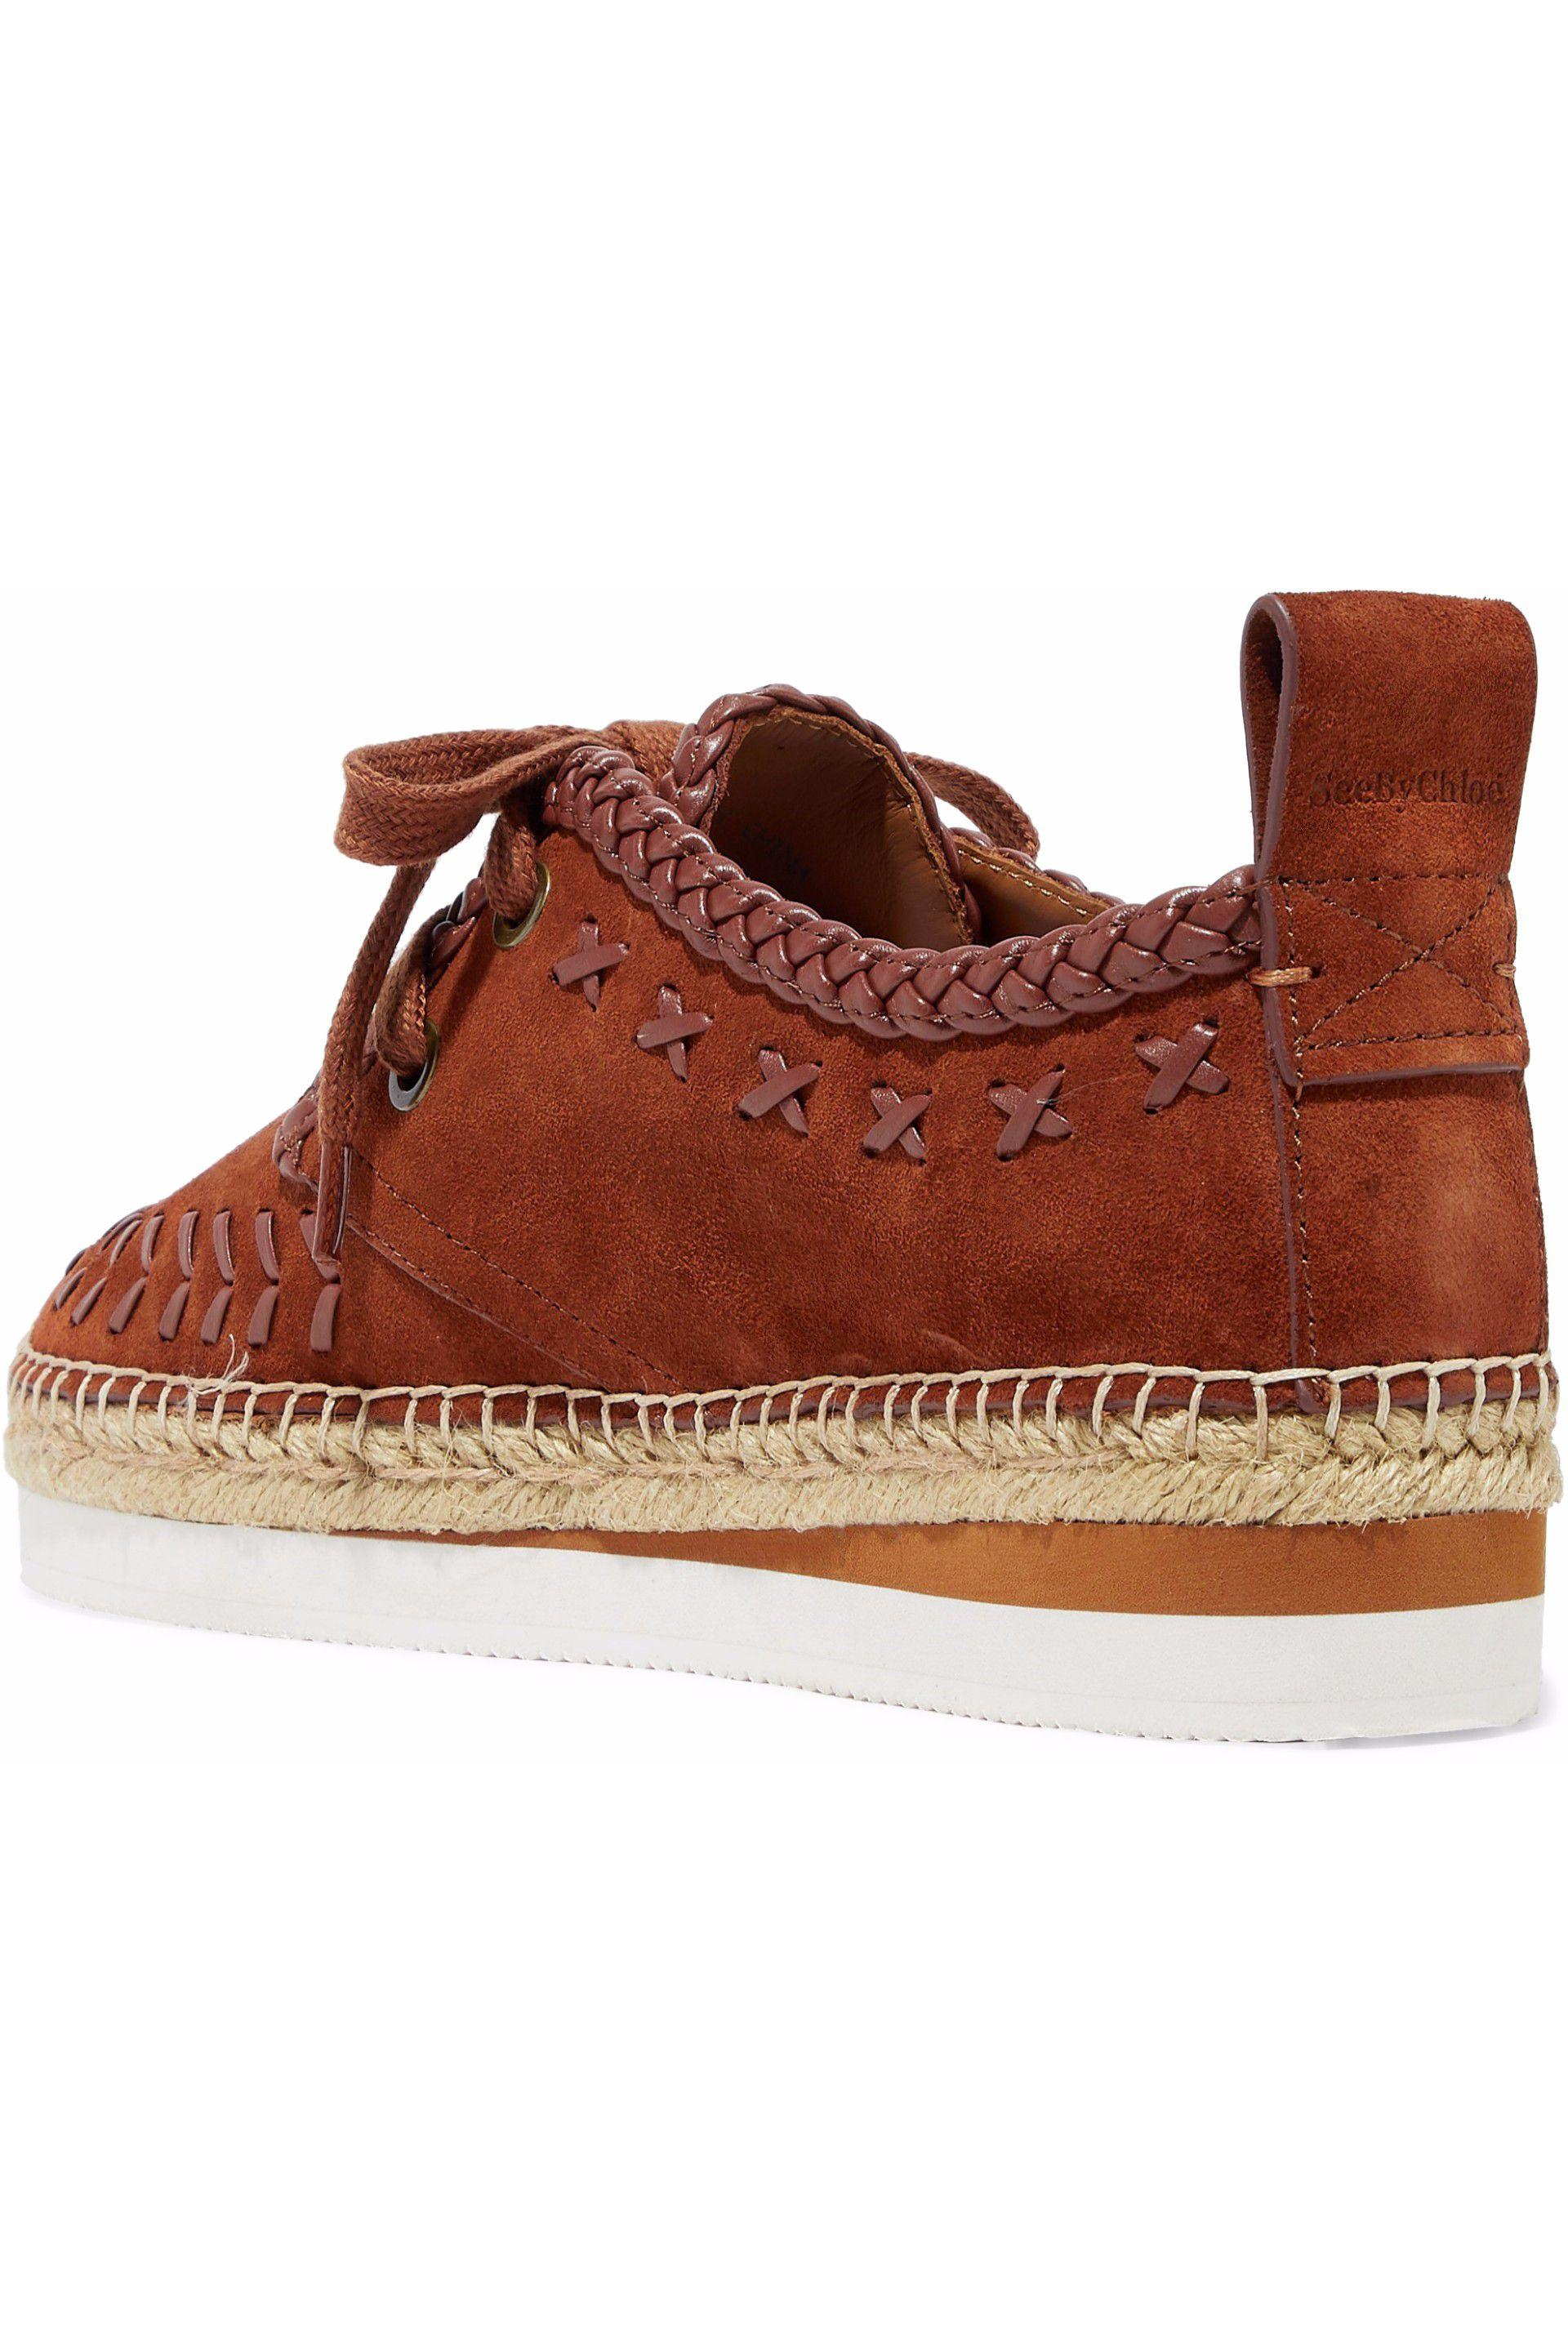 b47a6b4d2e See By Chloé See By Chloé Woman Leather-trimmed Suede Platform ...